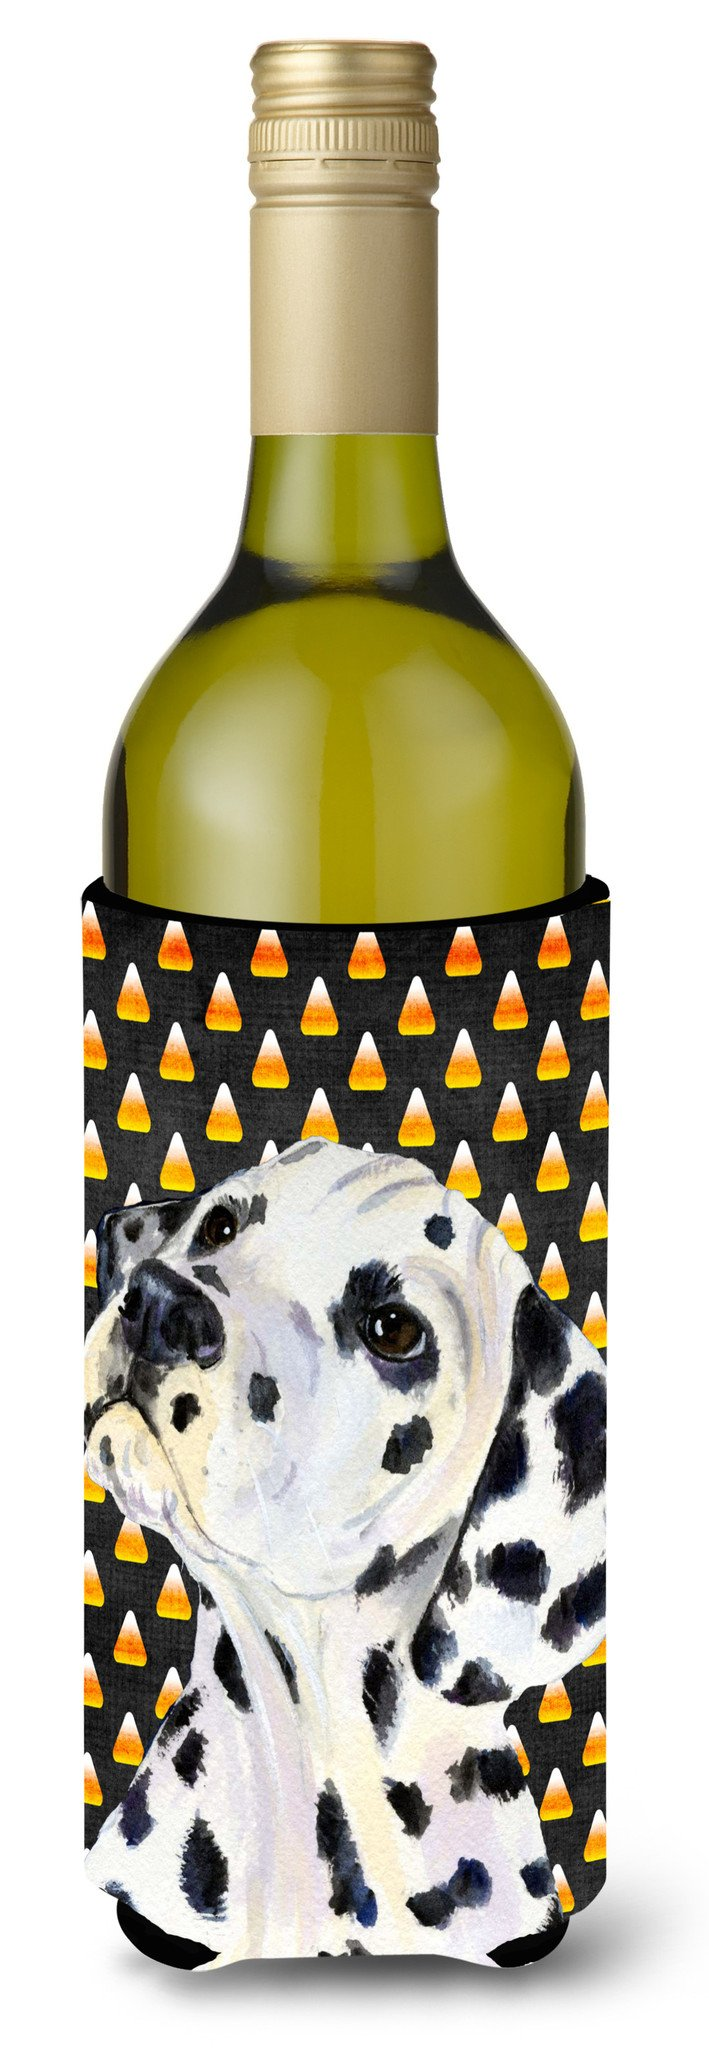 Dalmatian Candy Corn Halloween Portrait Wine Bottle Beverage Insulator Beverage Insulator Hugger SS4286LITERK by Caroline's Treasures